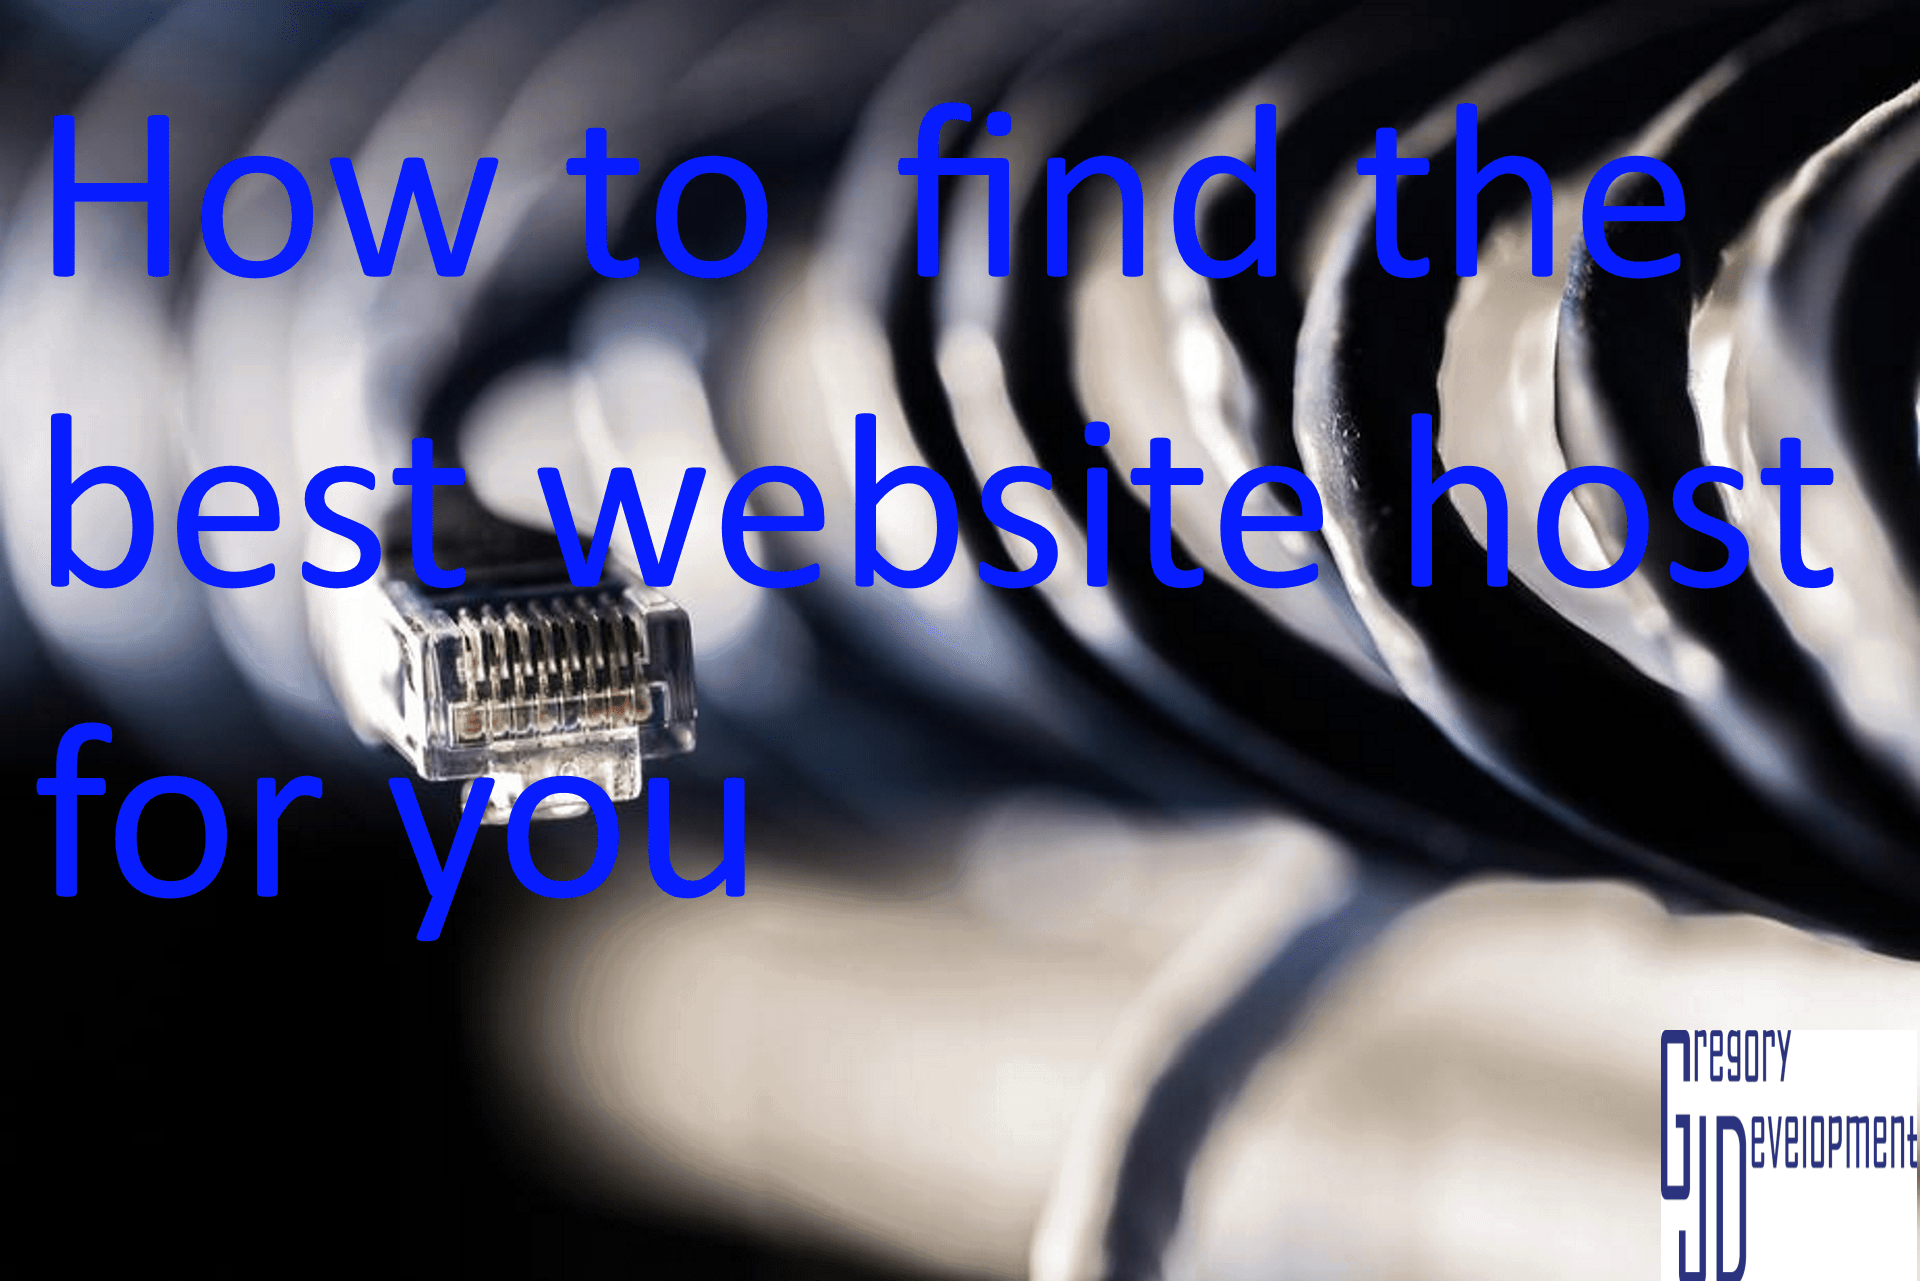 How to Find the Best Website Host For You